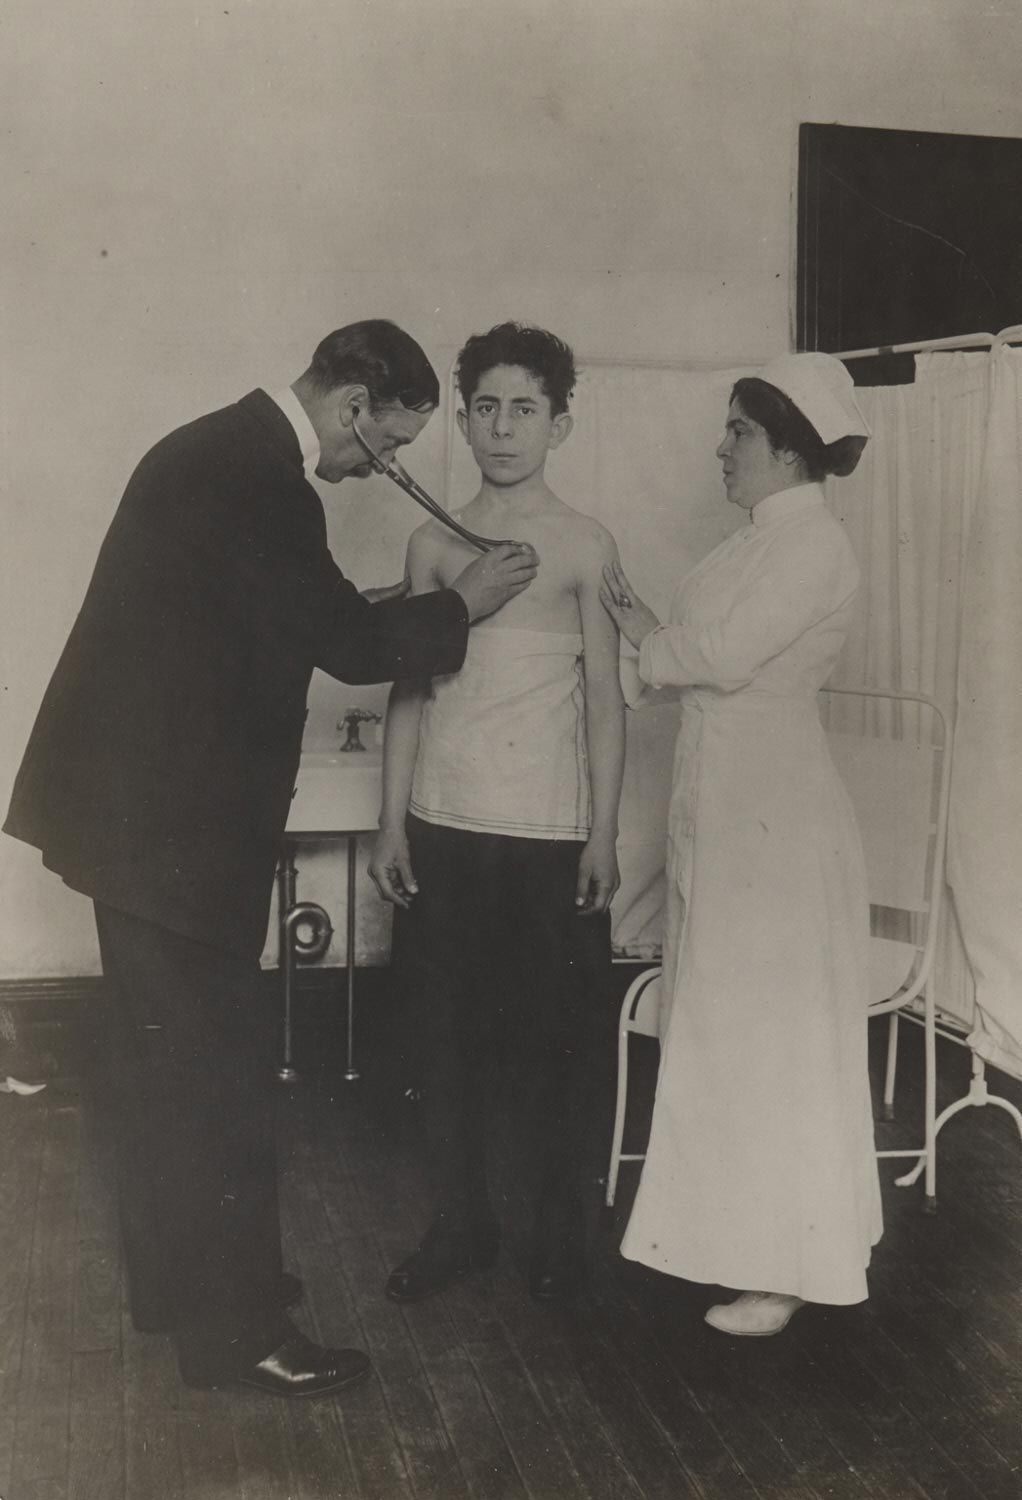 Board of Health Examination of Applicant for Working Papers to See that He is Physically Able to Work